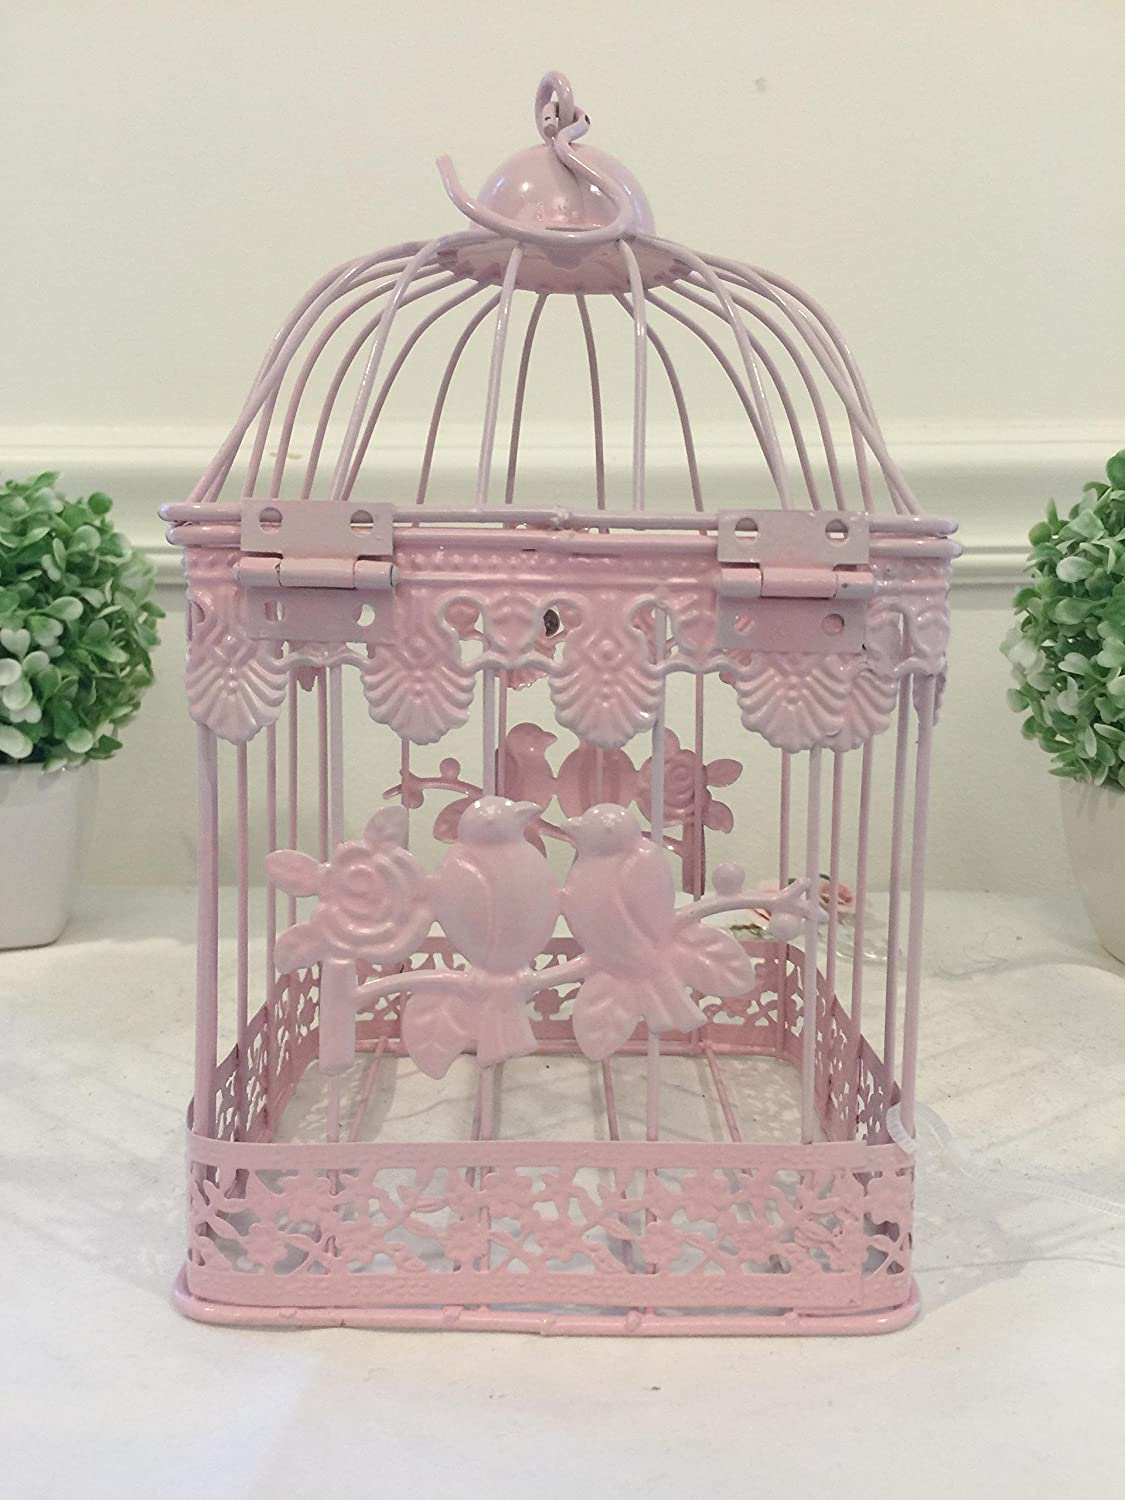 Pink Wrought Iron Birdcage Shaped Hanging Planters, Shabby Chic,Set of 3 with Beautiful Love Bird Design